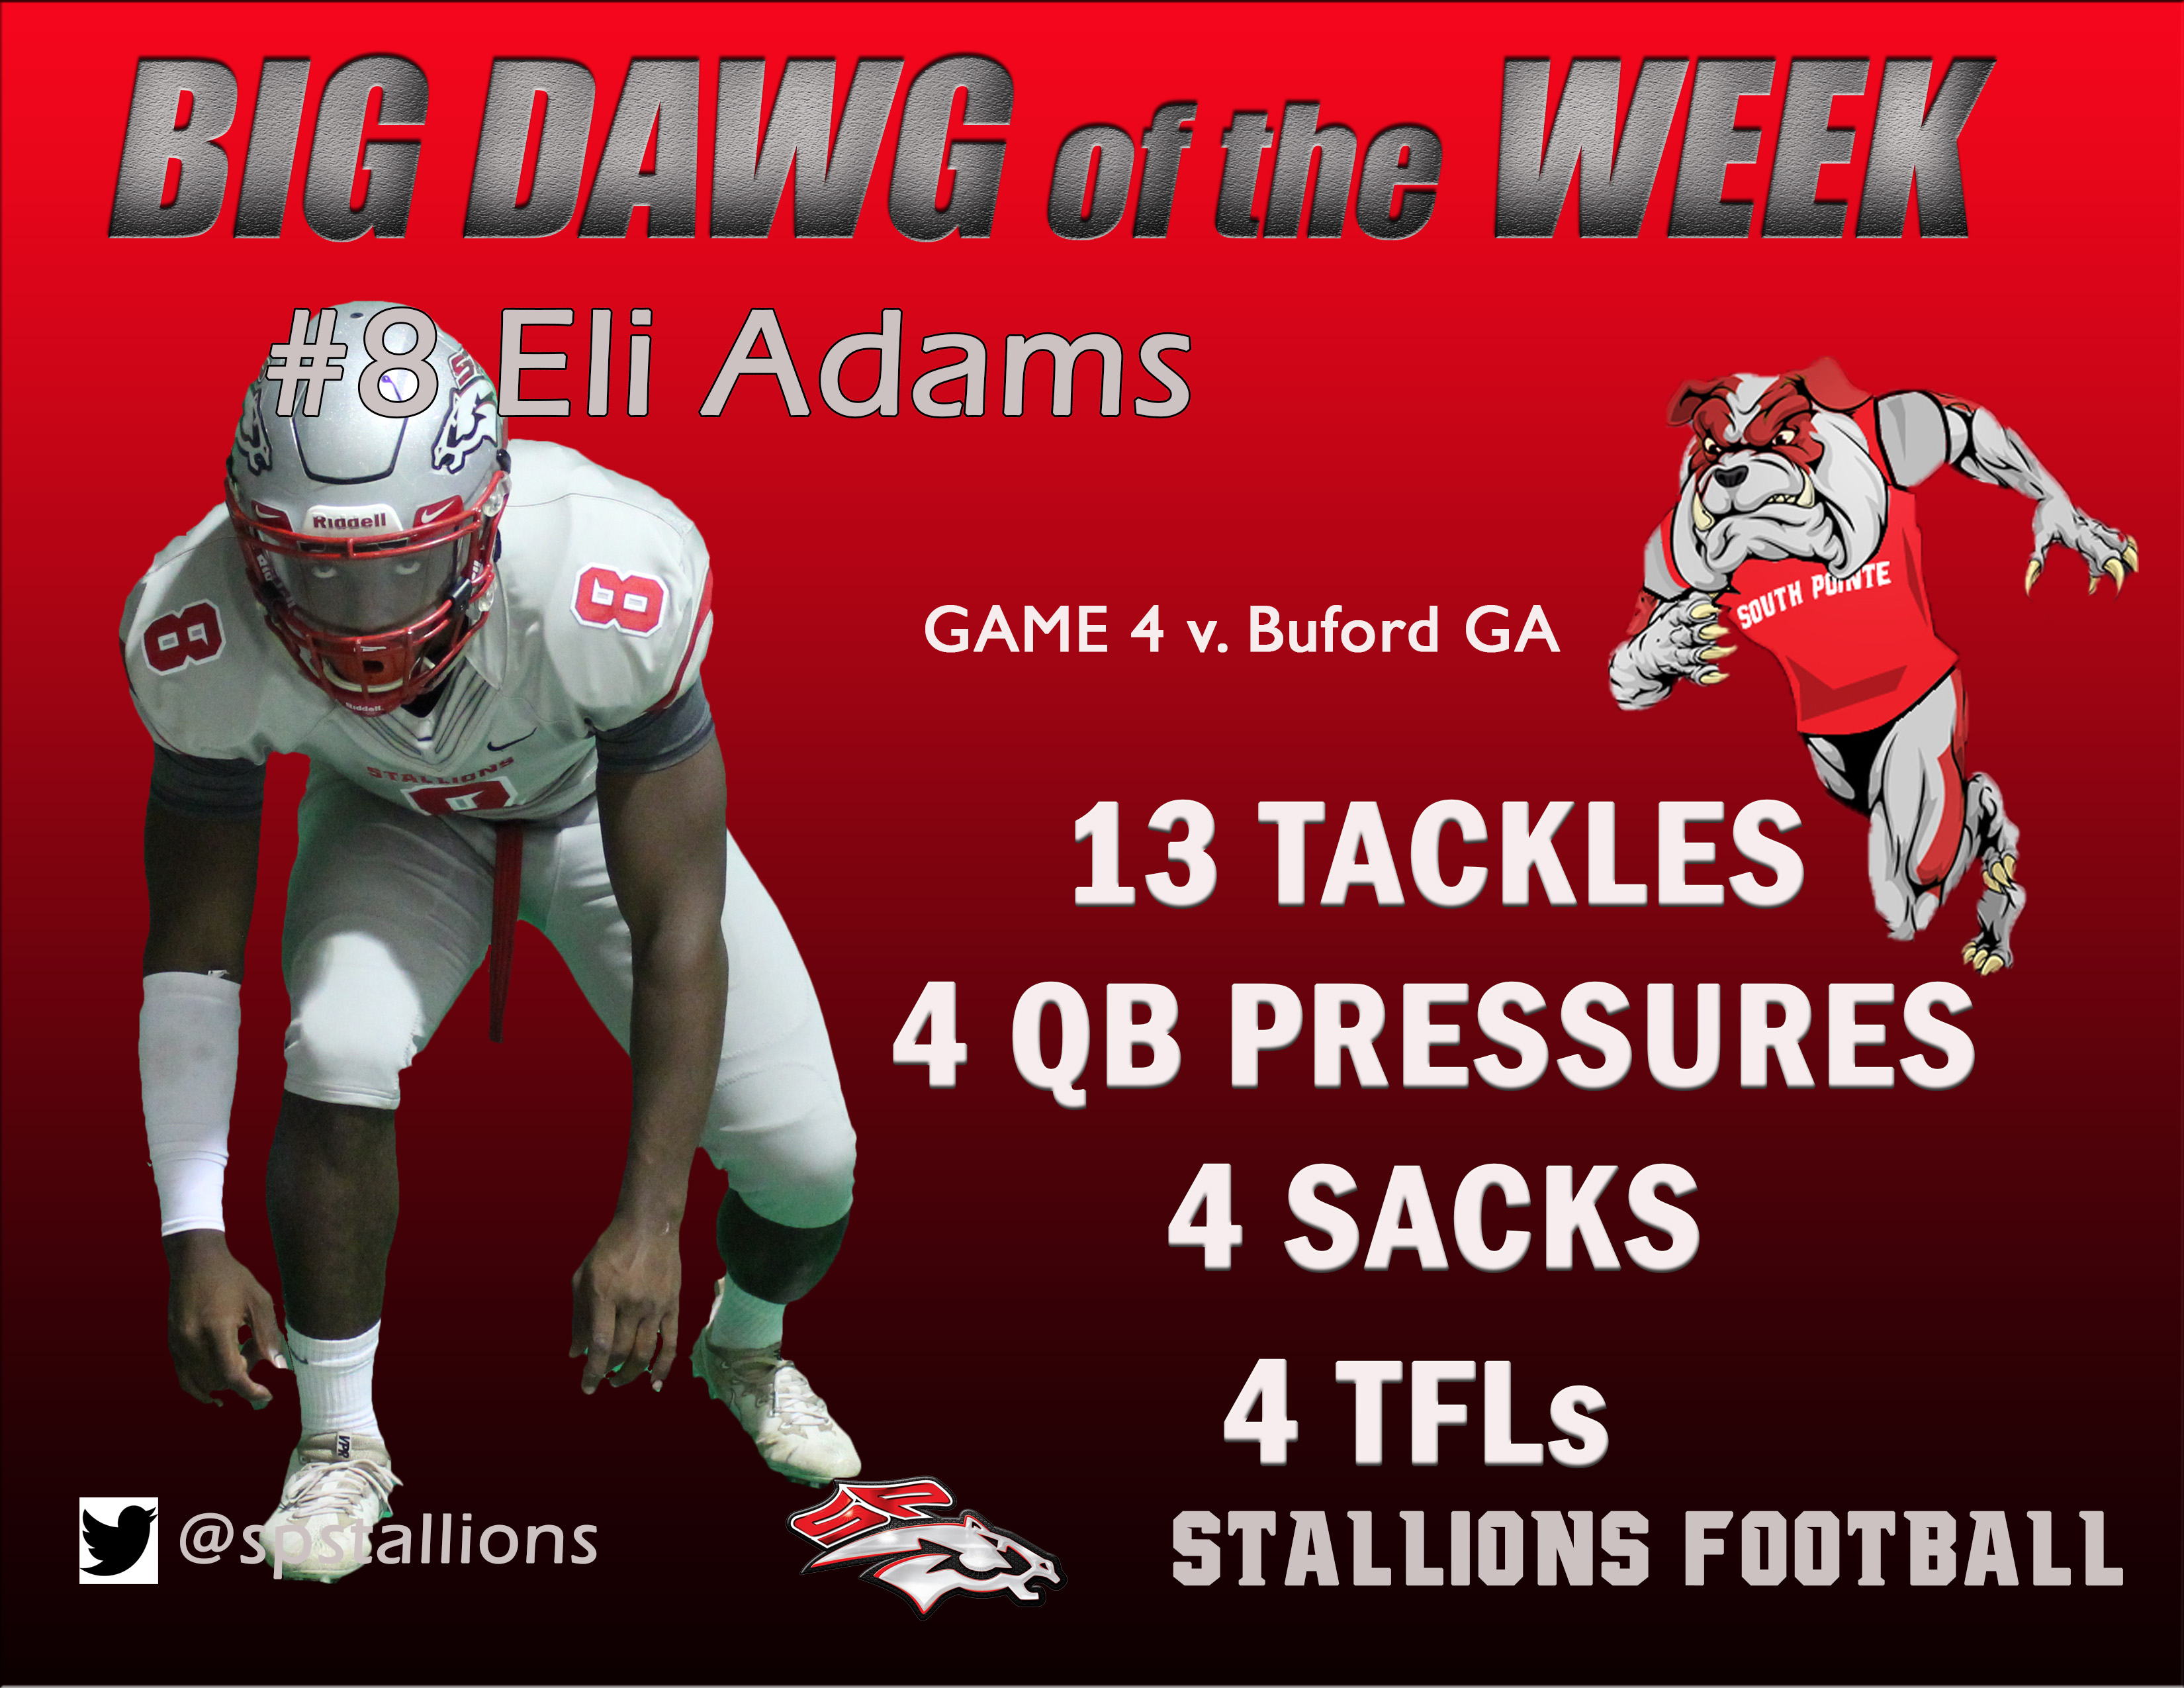 #8 Eli Adams Big Dawg of Week